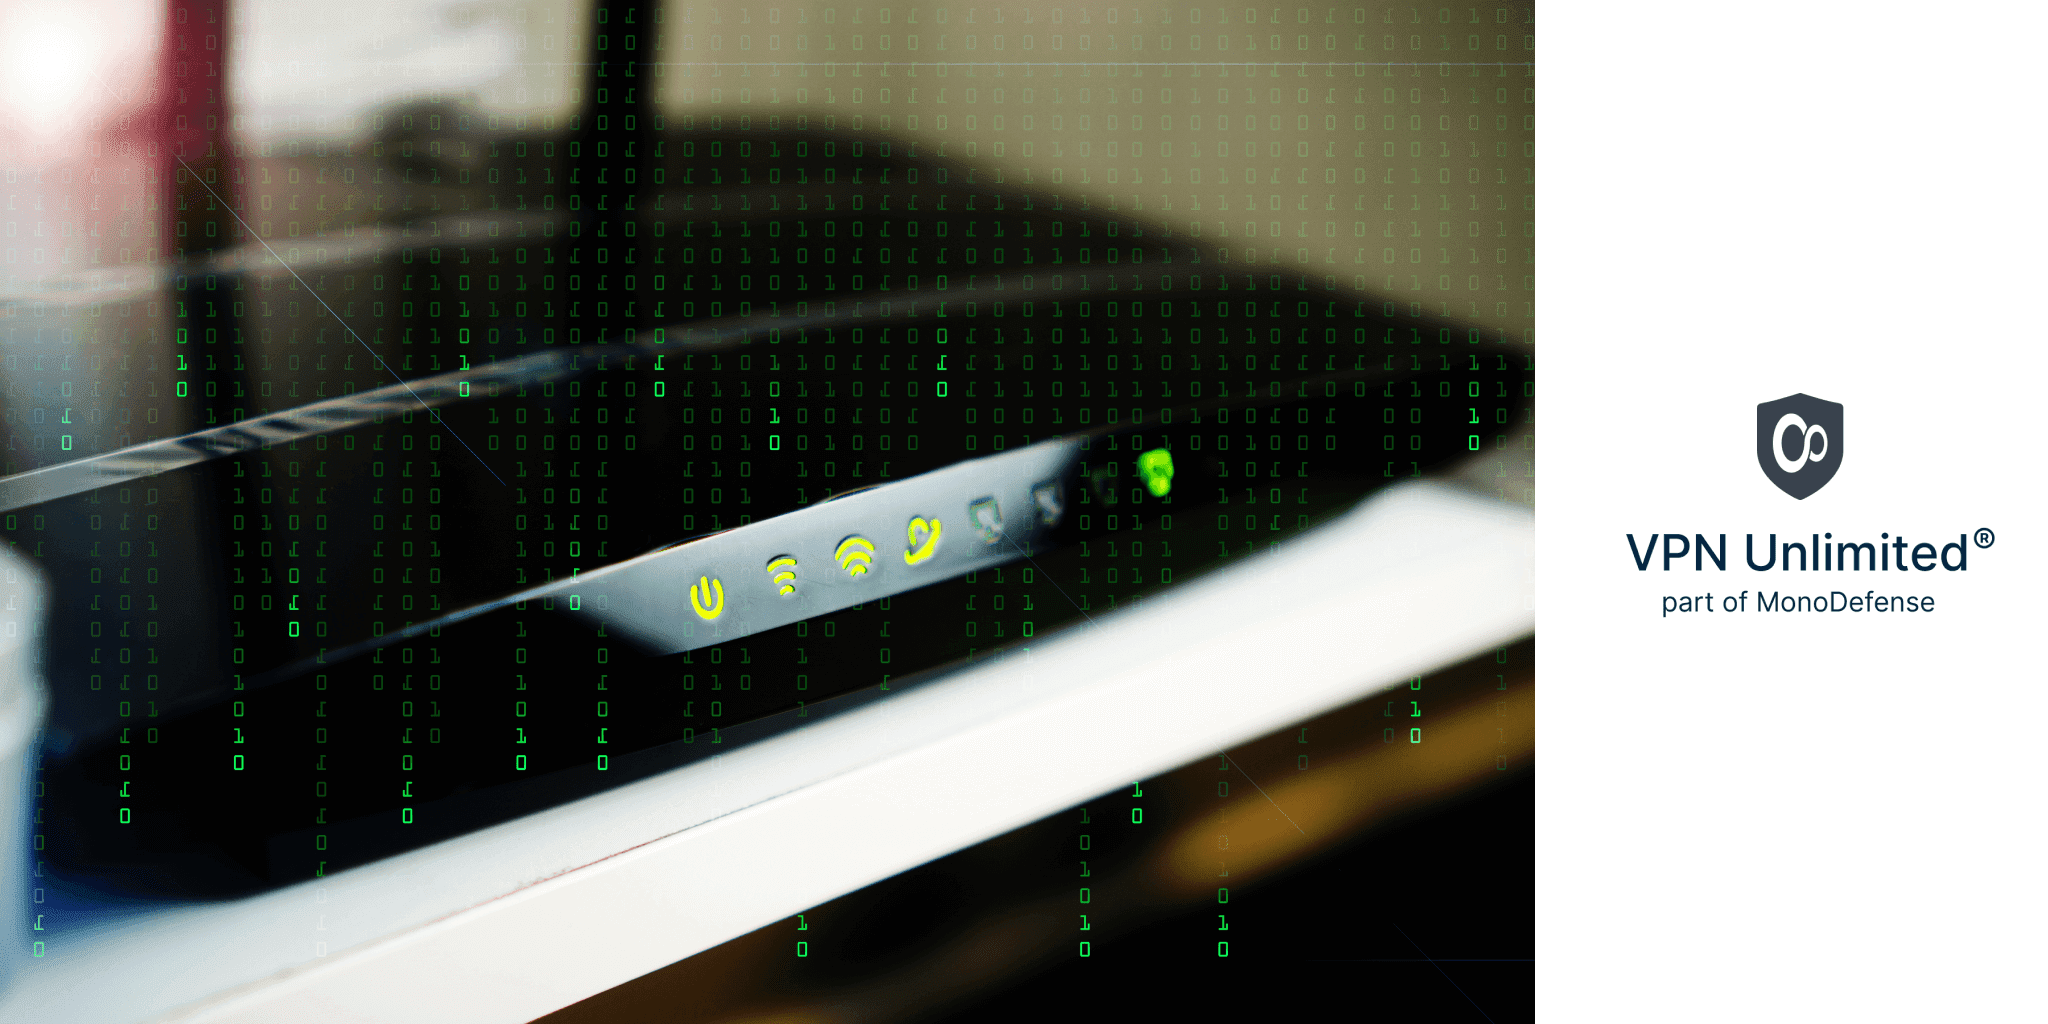 How to Protect Your WiFi Connection from Hackers